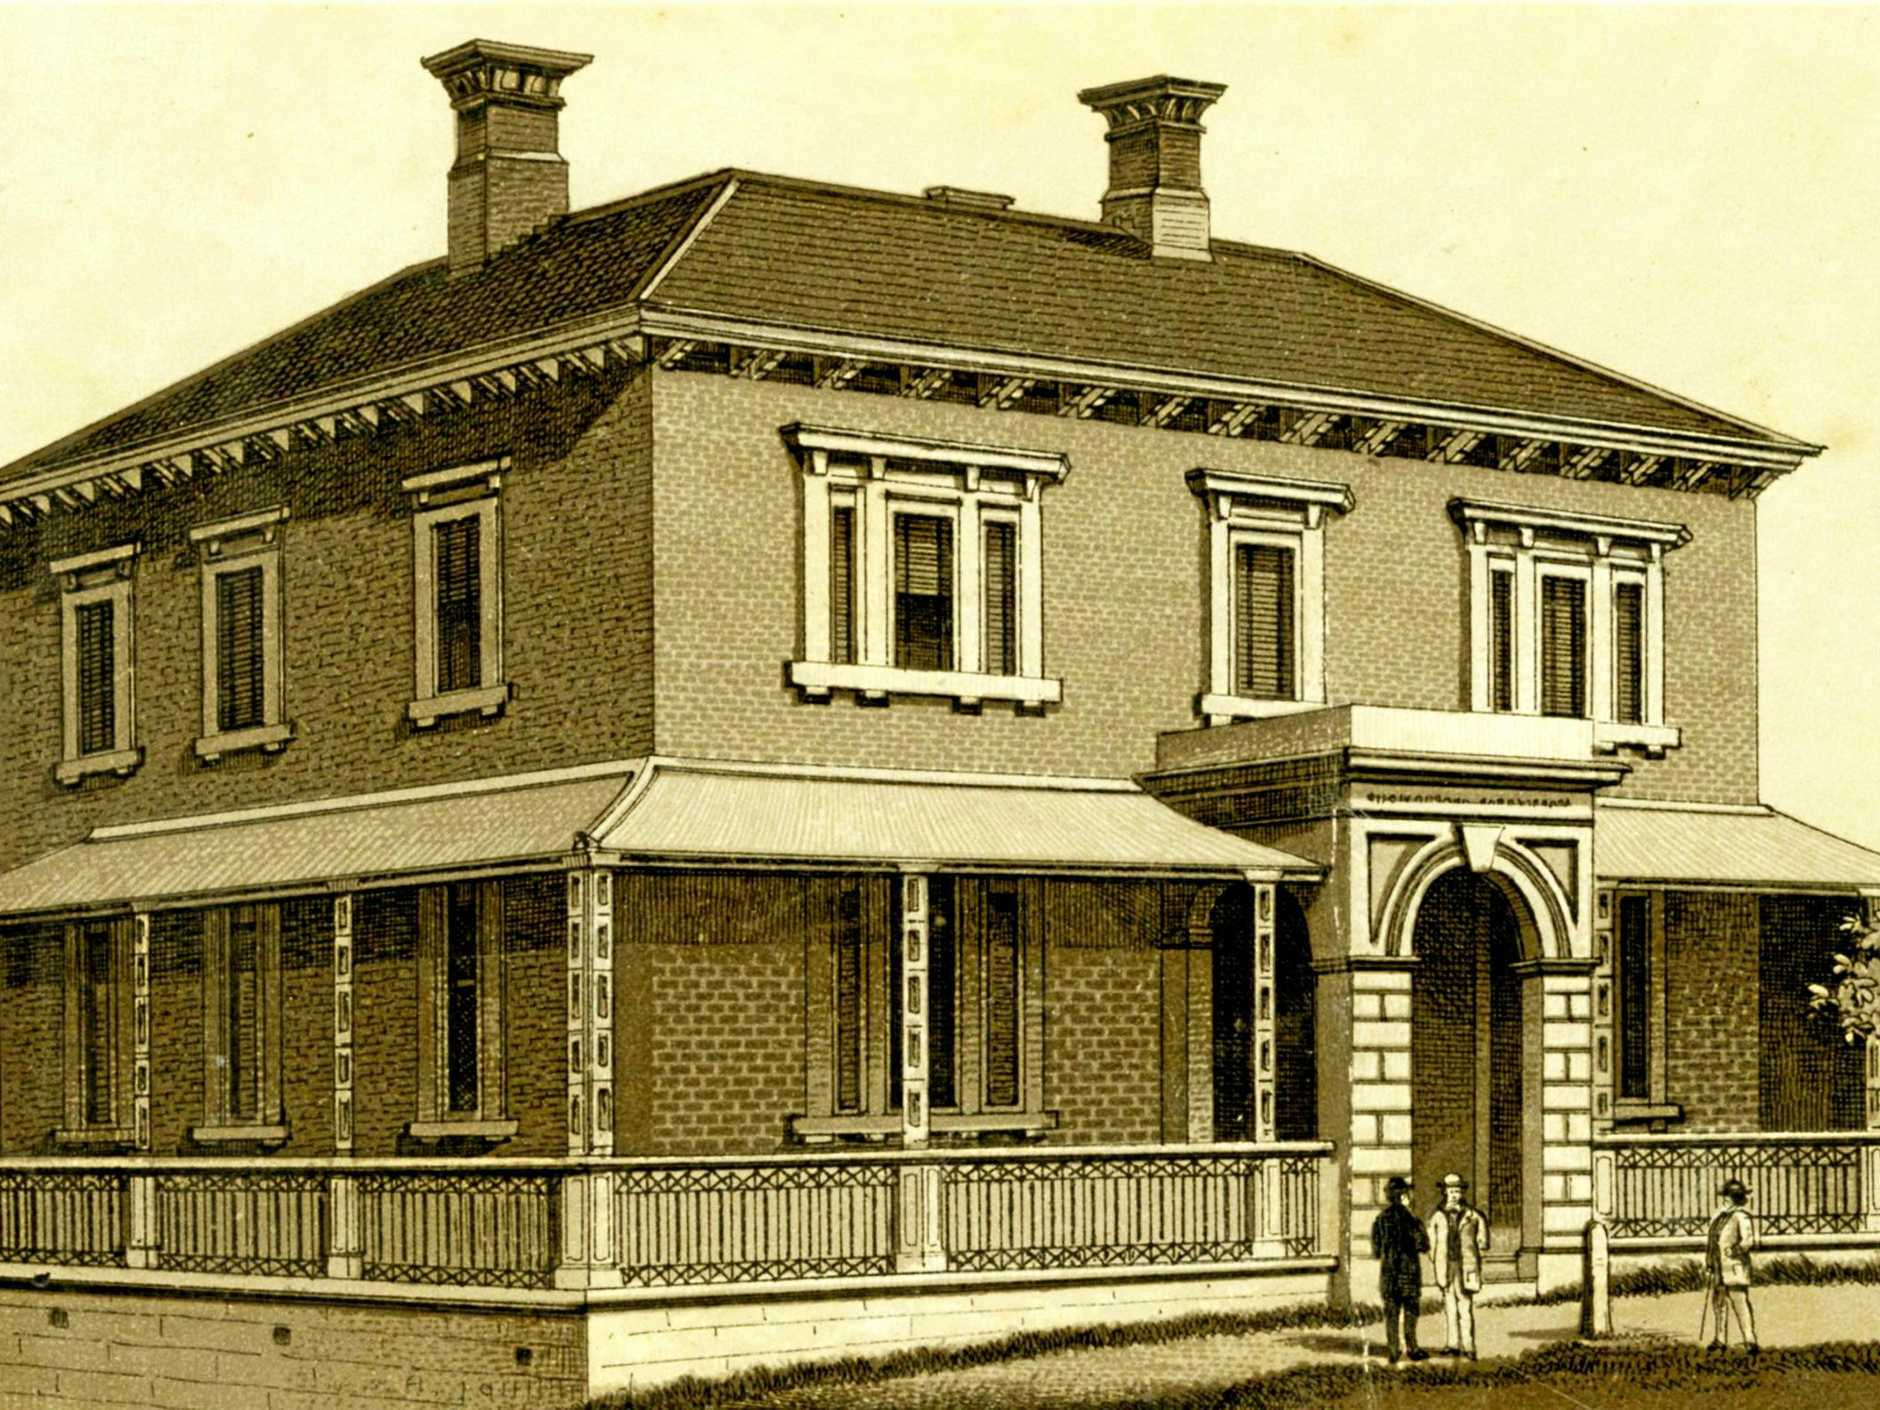 INSTITUTION: The Bank of New South Wales which was on the corner of Brisbane and Bell streets in Ipswich, from 1863-1932.